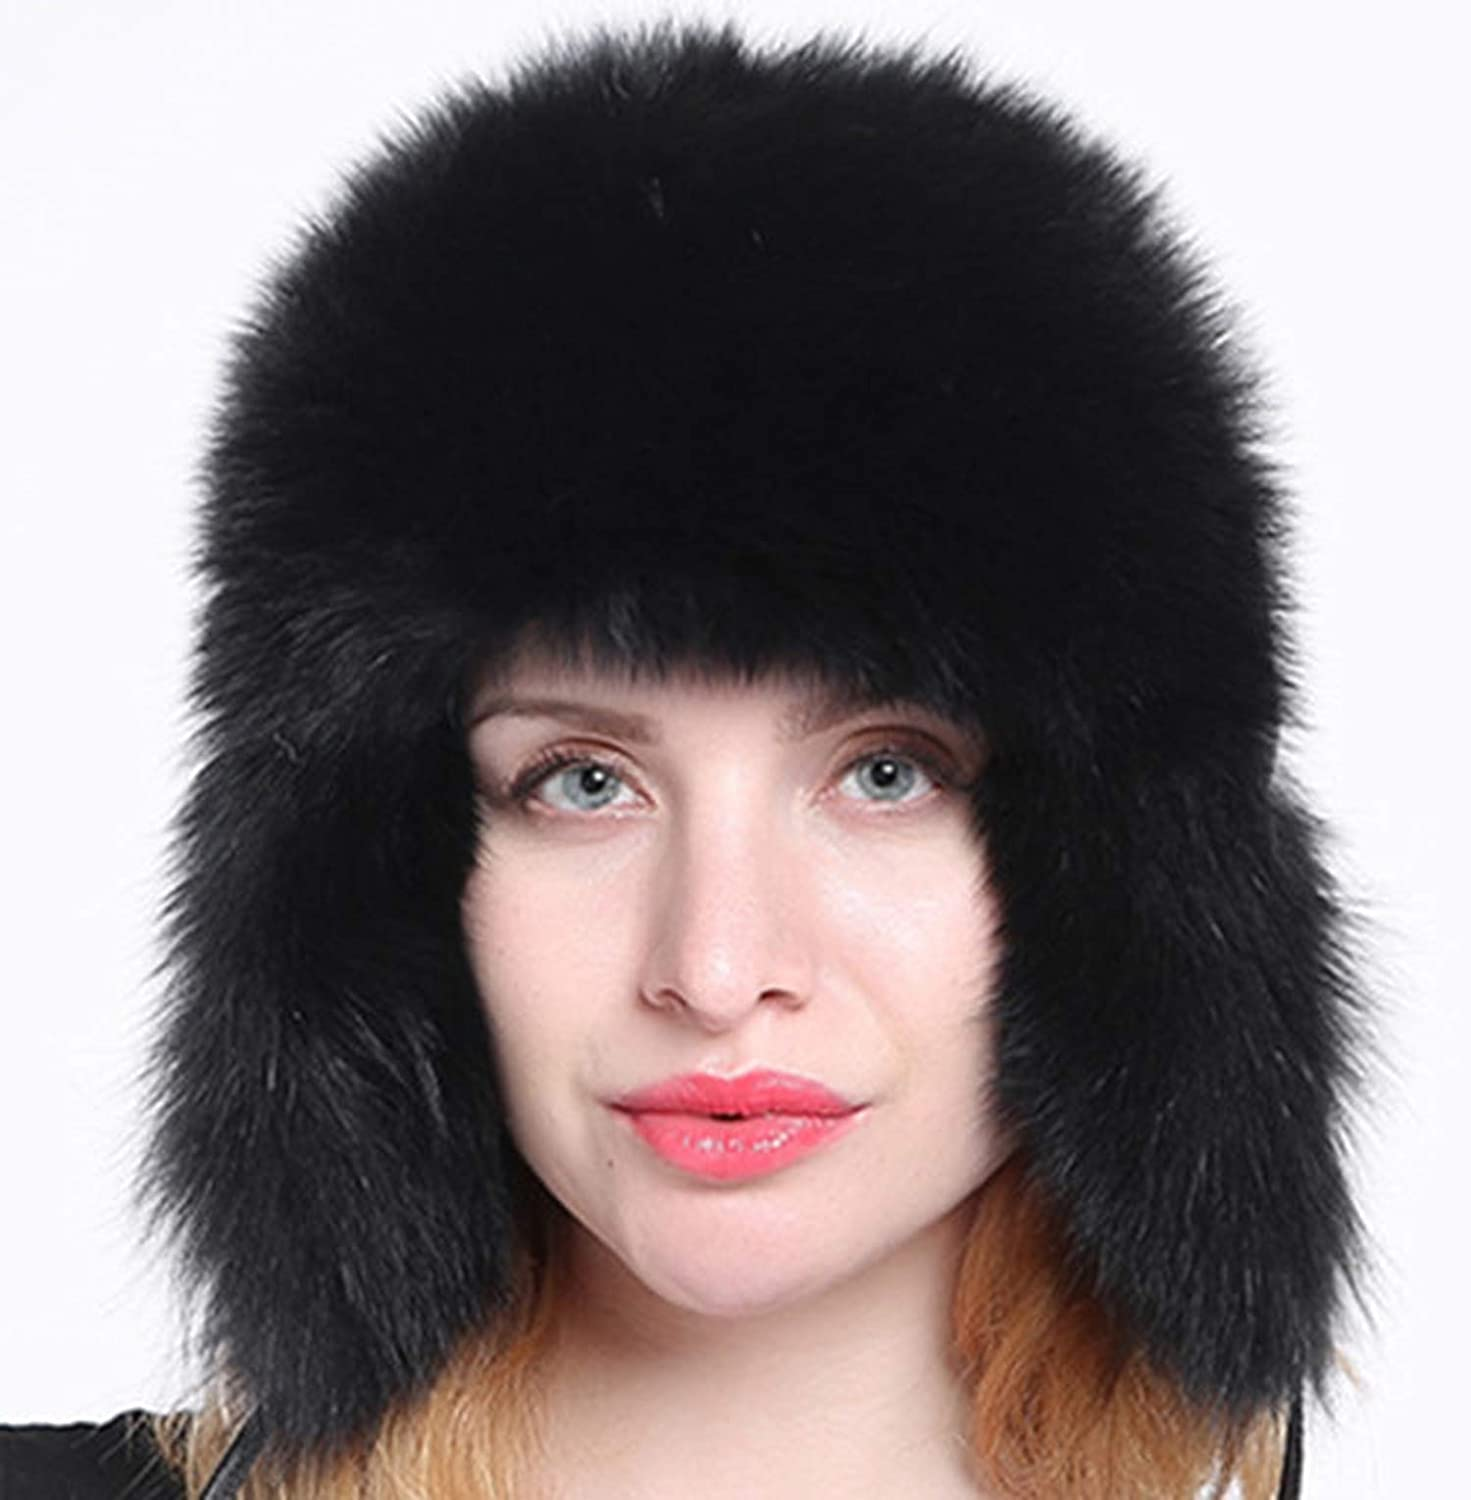 c930bac8bf1ba Women's Genuine Fox Fur Trapper Hat with pom poms Winter Ear Flaps Bomber  Hats Russian Ushanka Outdoor caps at Amazon Men's Clothing store: